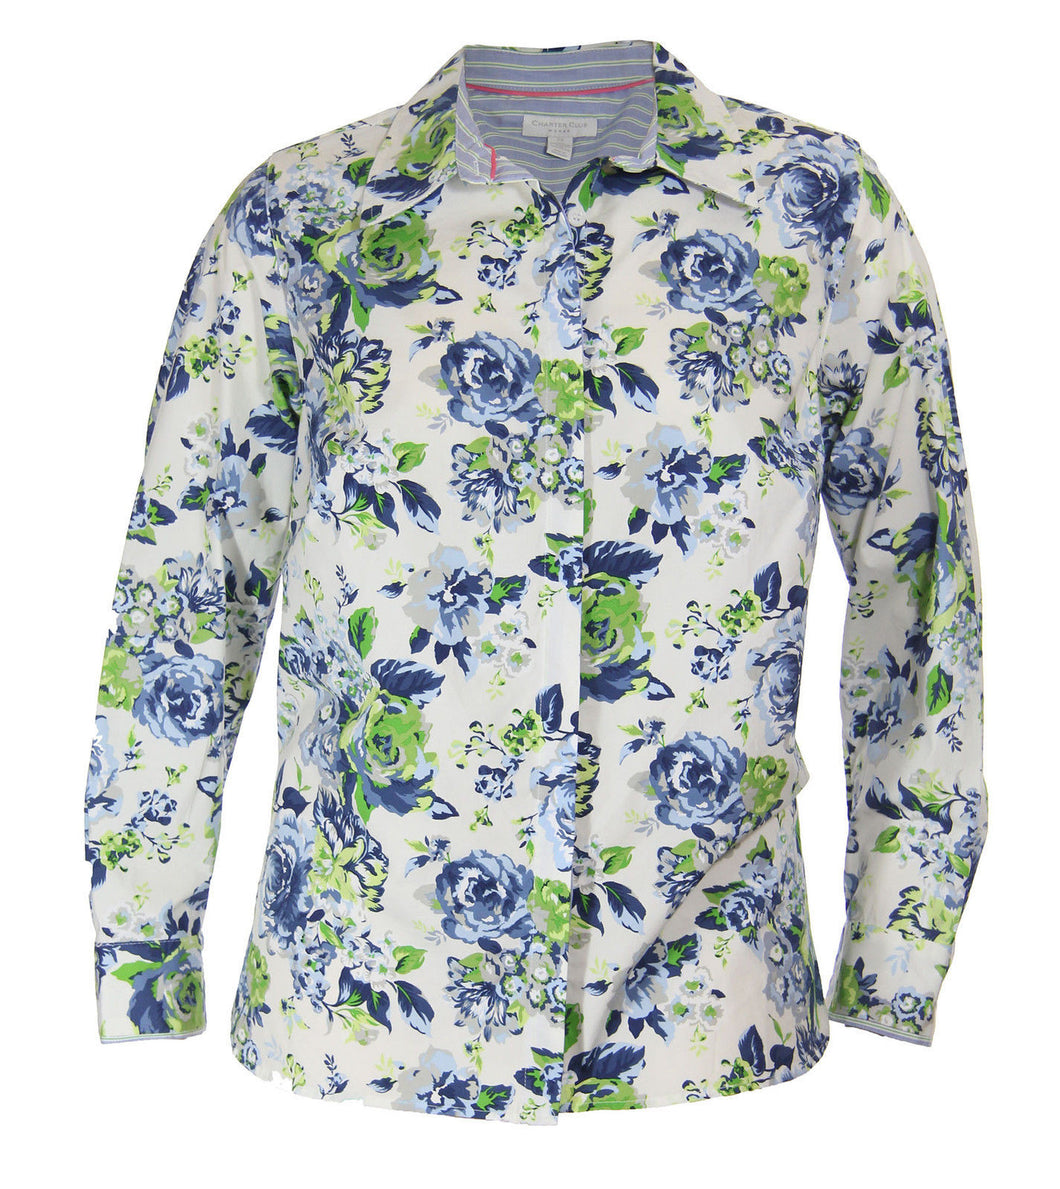 Charter Club Multi Color Floral Print Long Sleeve Button Down Shirt